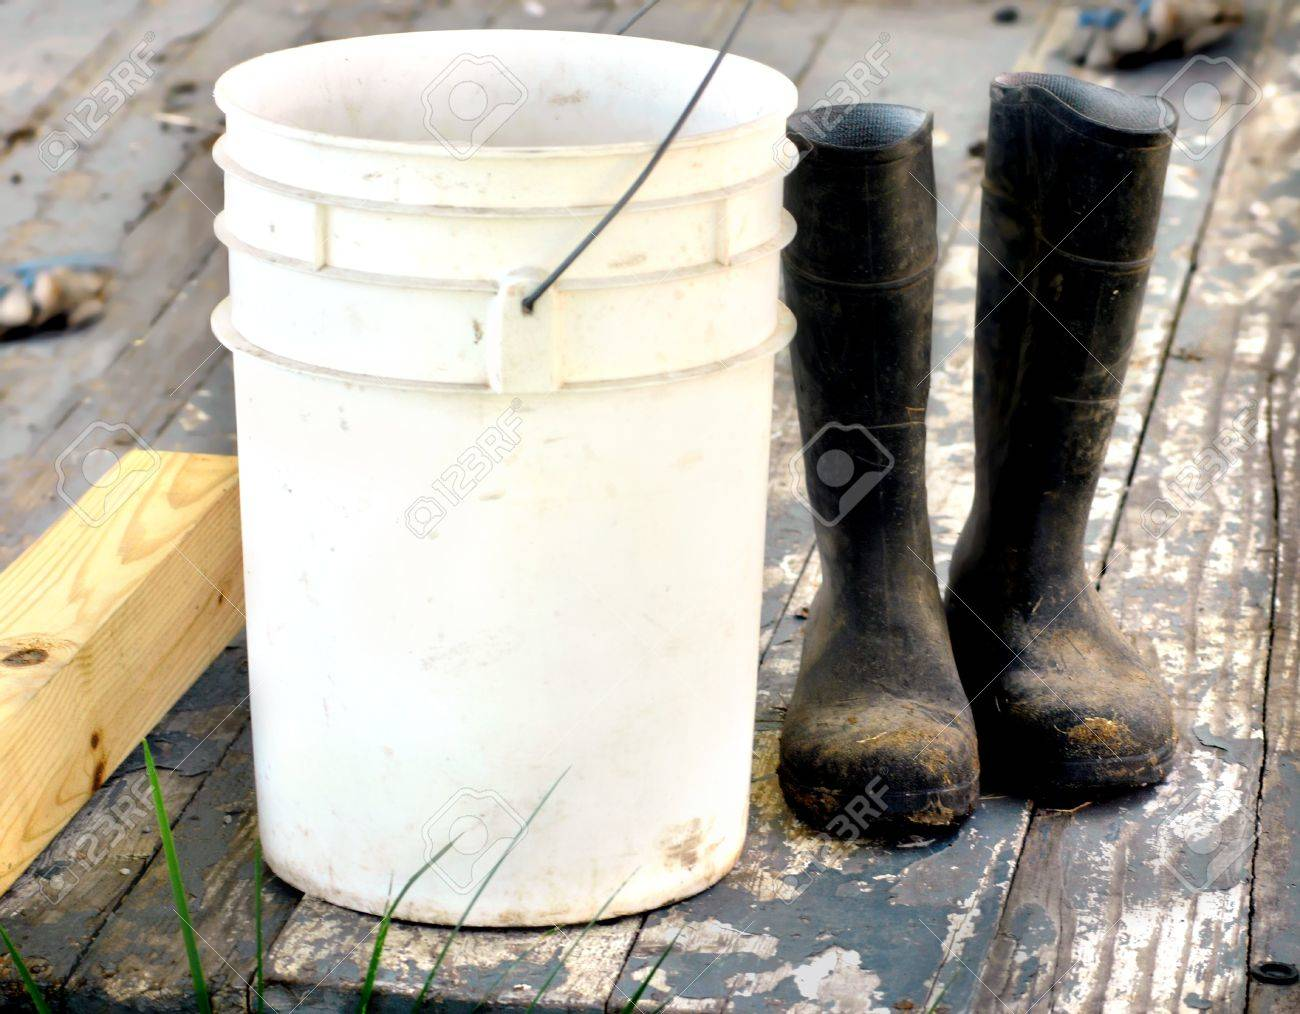 Muddy work boots set besides a five gallon bucket on a wooden porch Porch boards are cracked and peeling Work gloves lay in background Boots represent a work ethic - 15056430